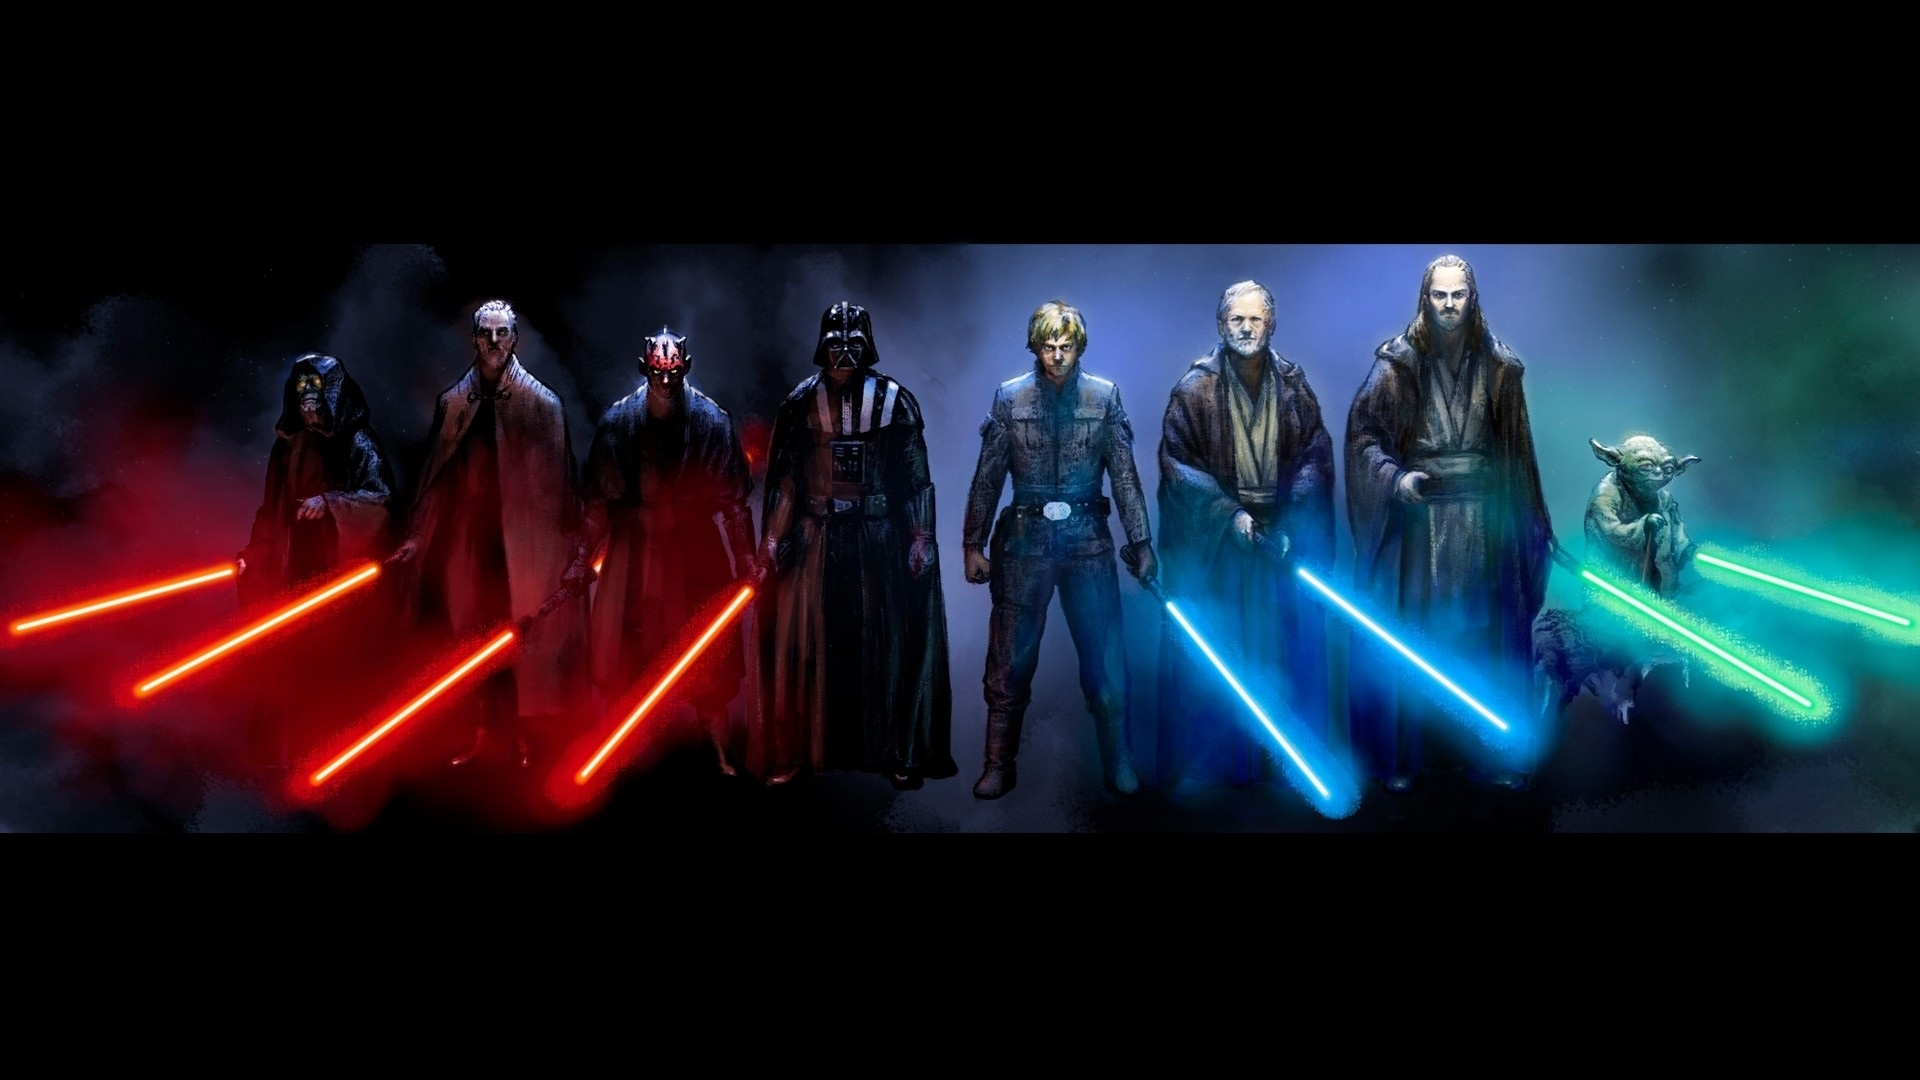 jedi and sith - 50 best star wars wallpapers